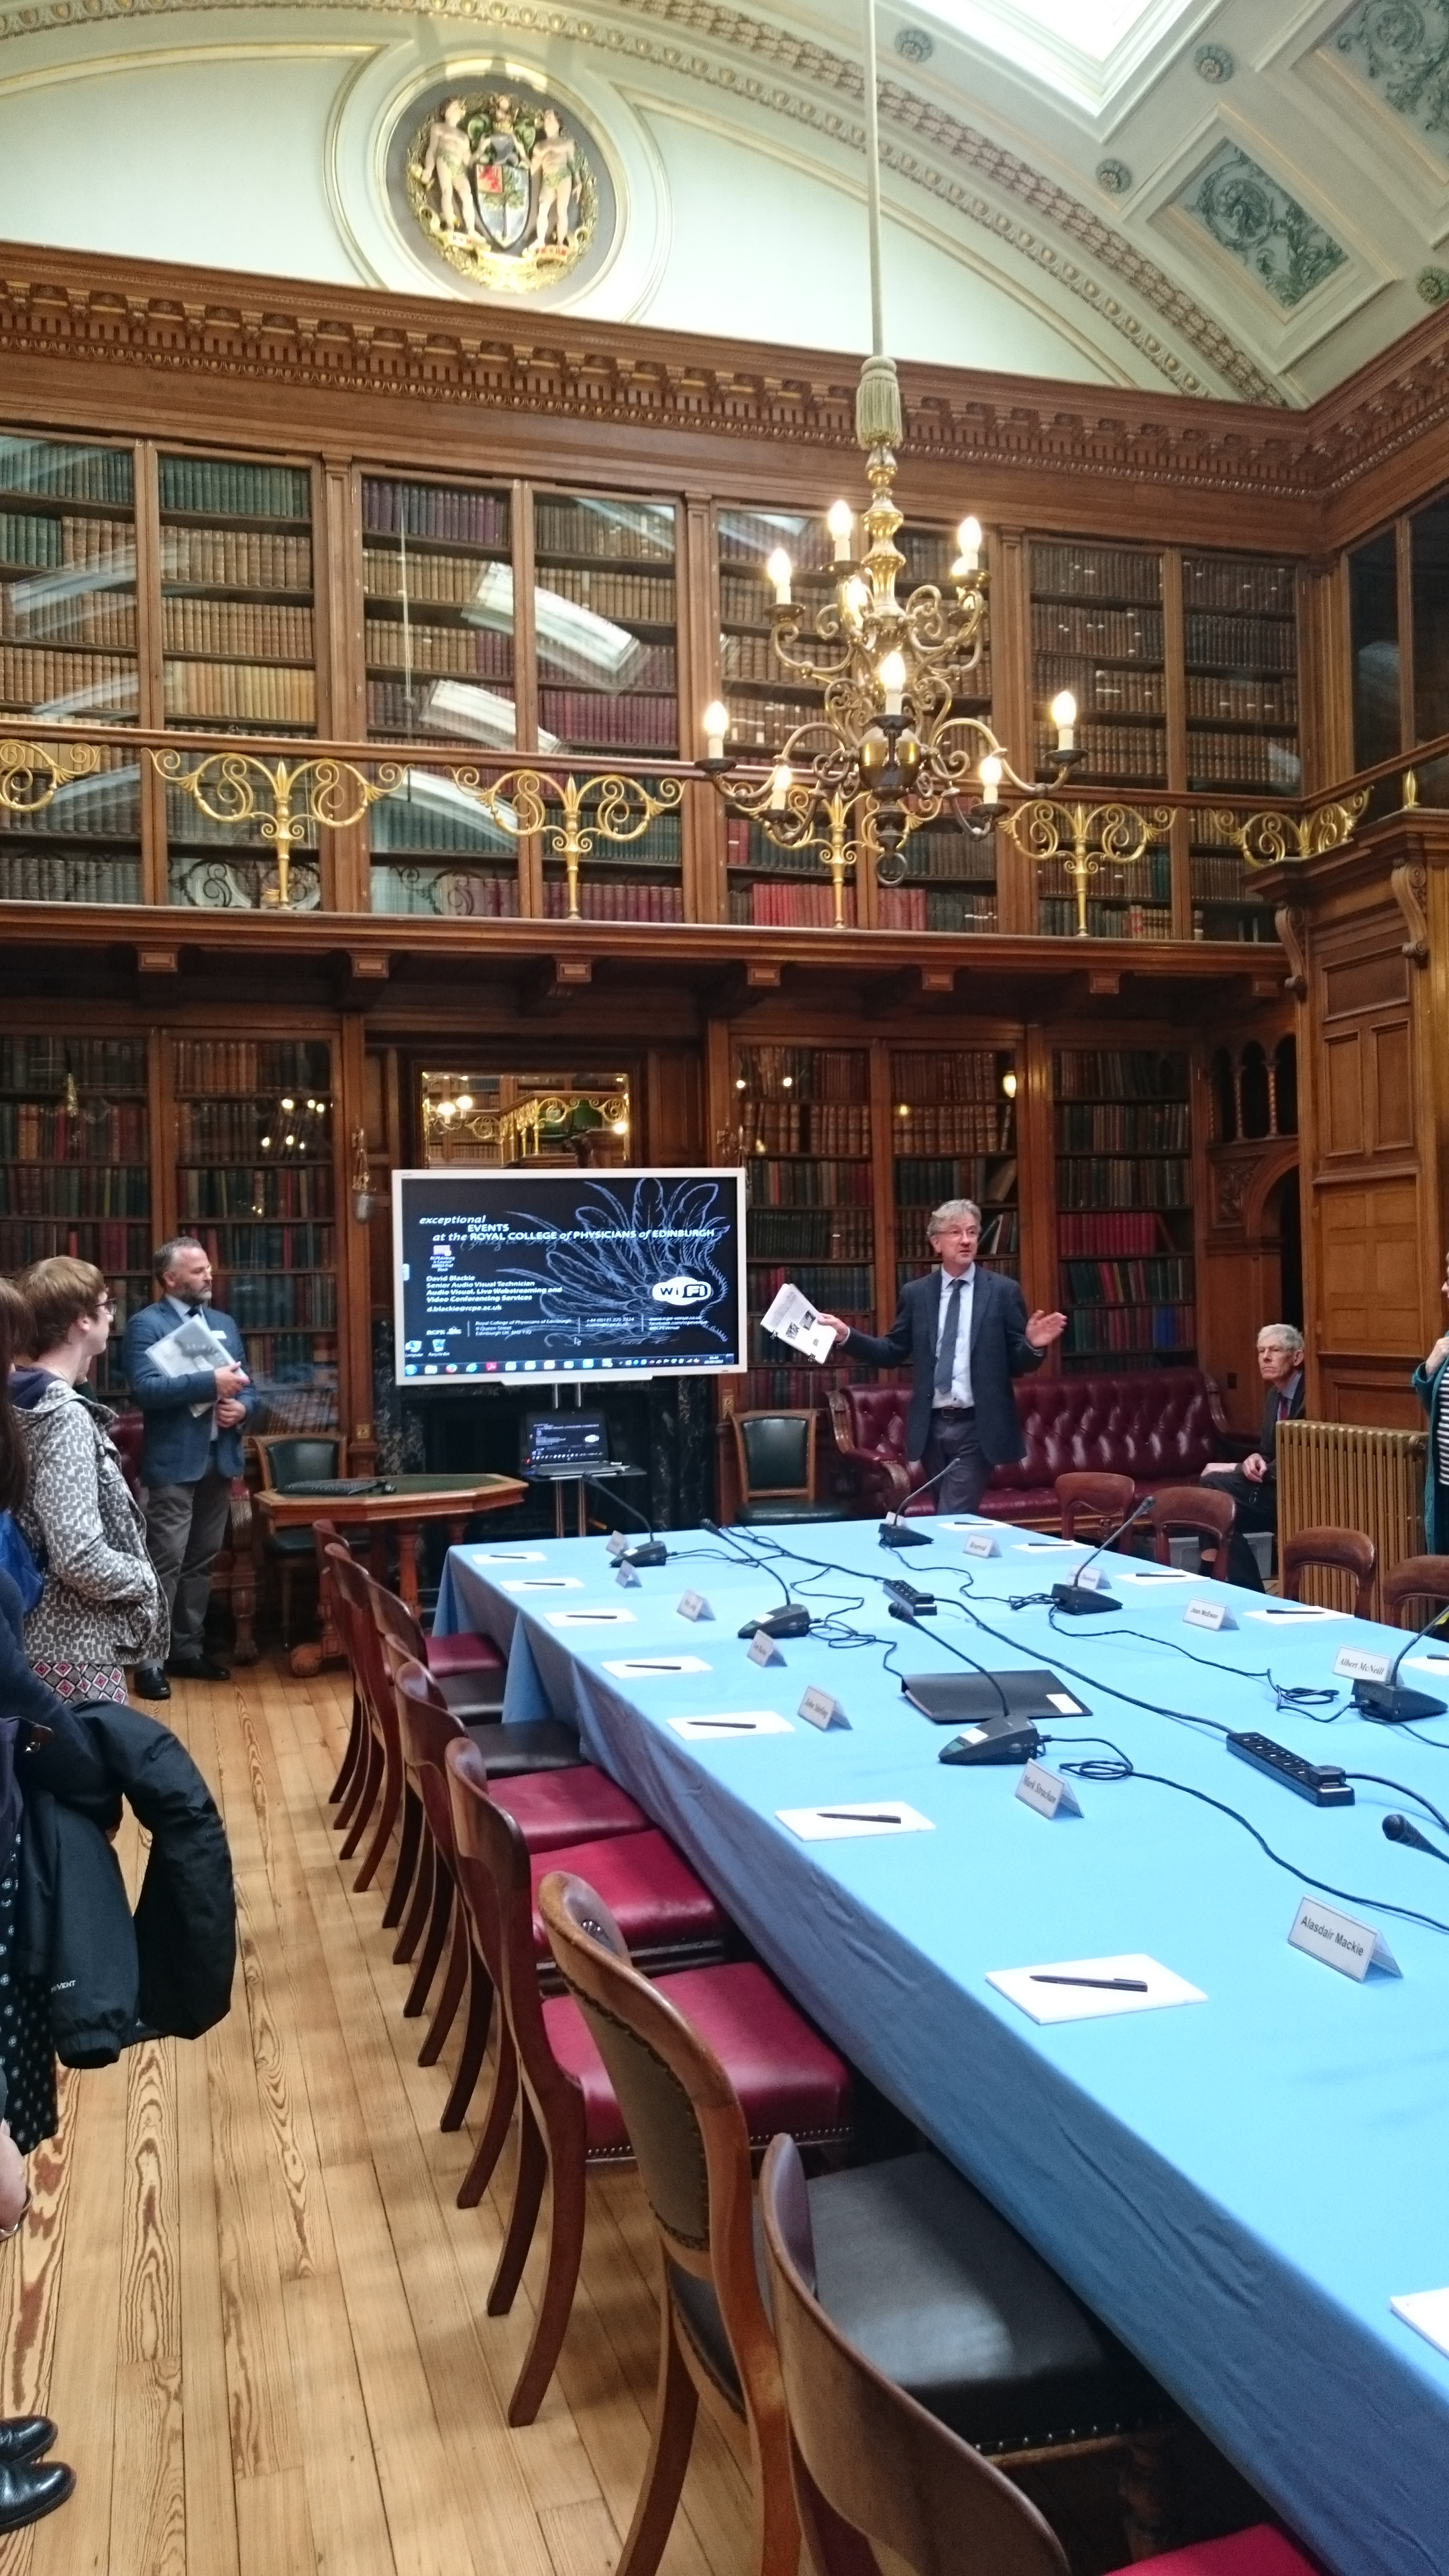 Ian Milne introducing the RCP Edinburgh building and collections. Corinne Harrison.